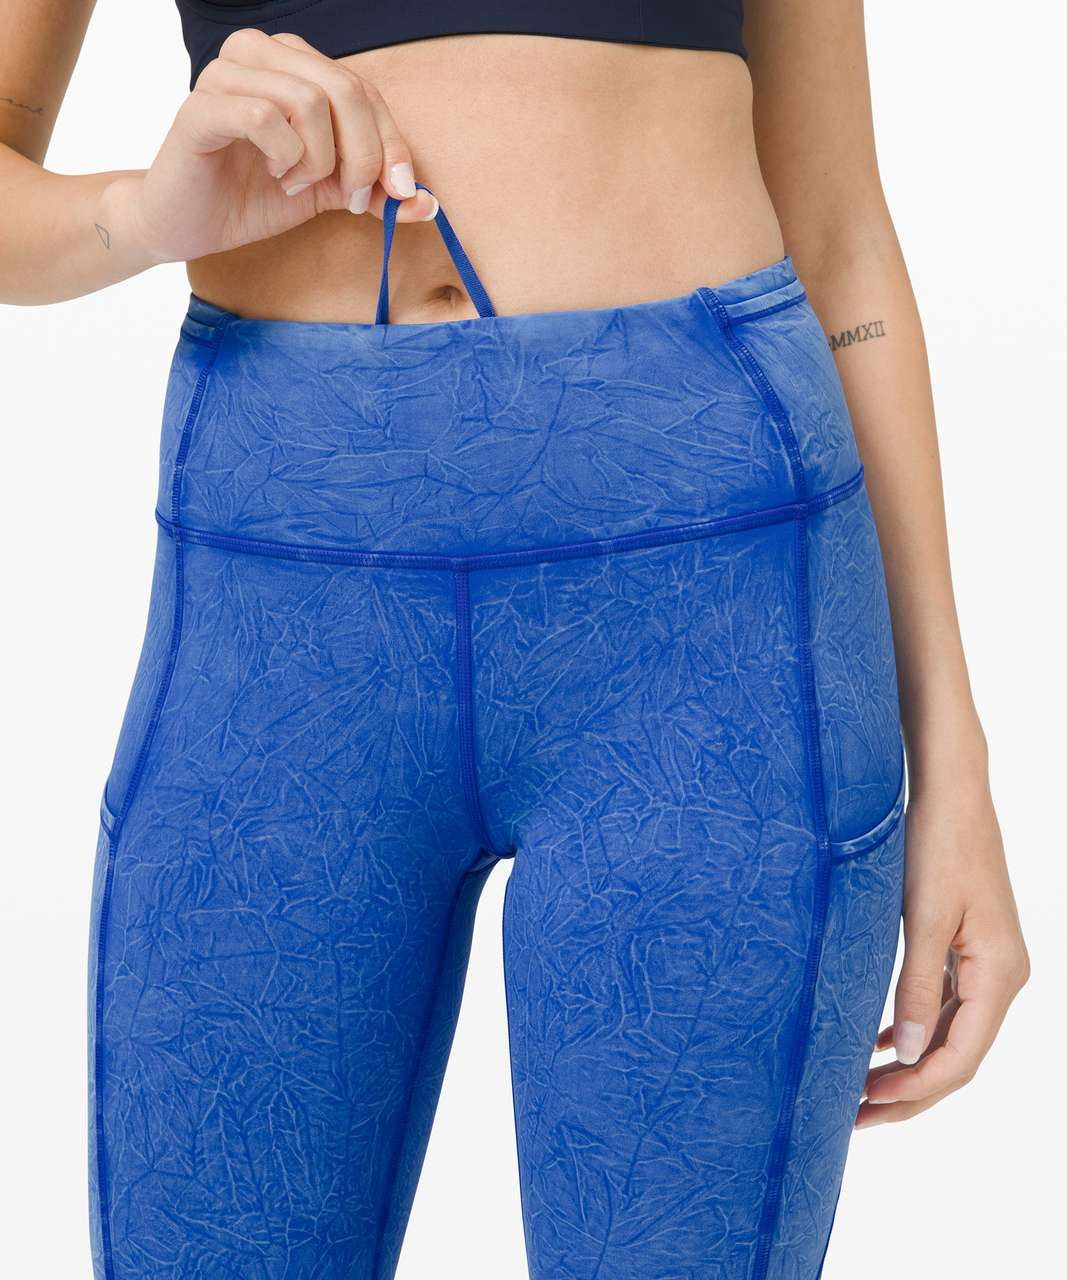 """Lululemon Fast and Free High Rise Tight 25"""" *Ice Dye - Ice Wash Cerulean Blue"""